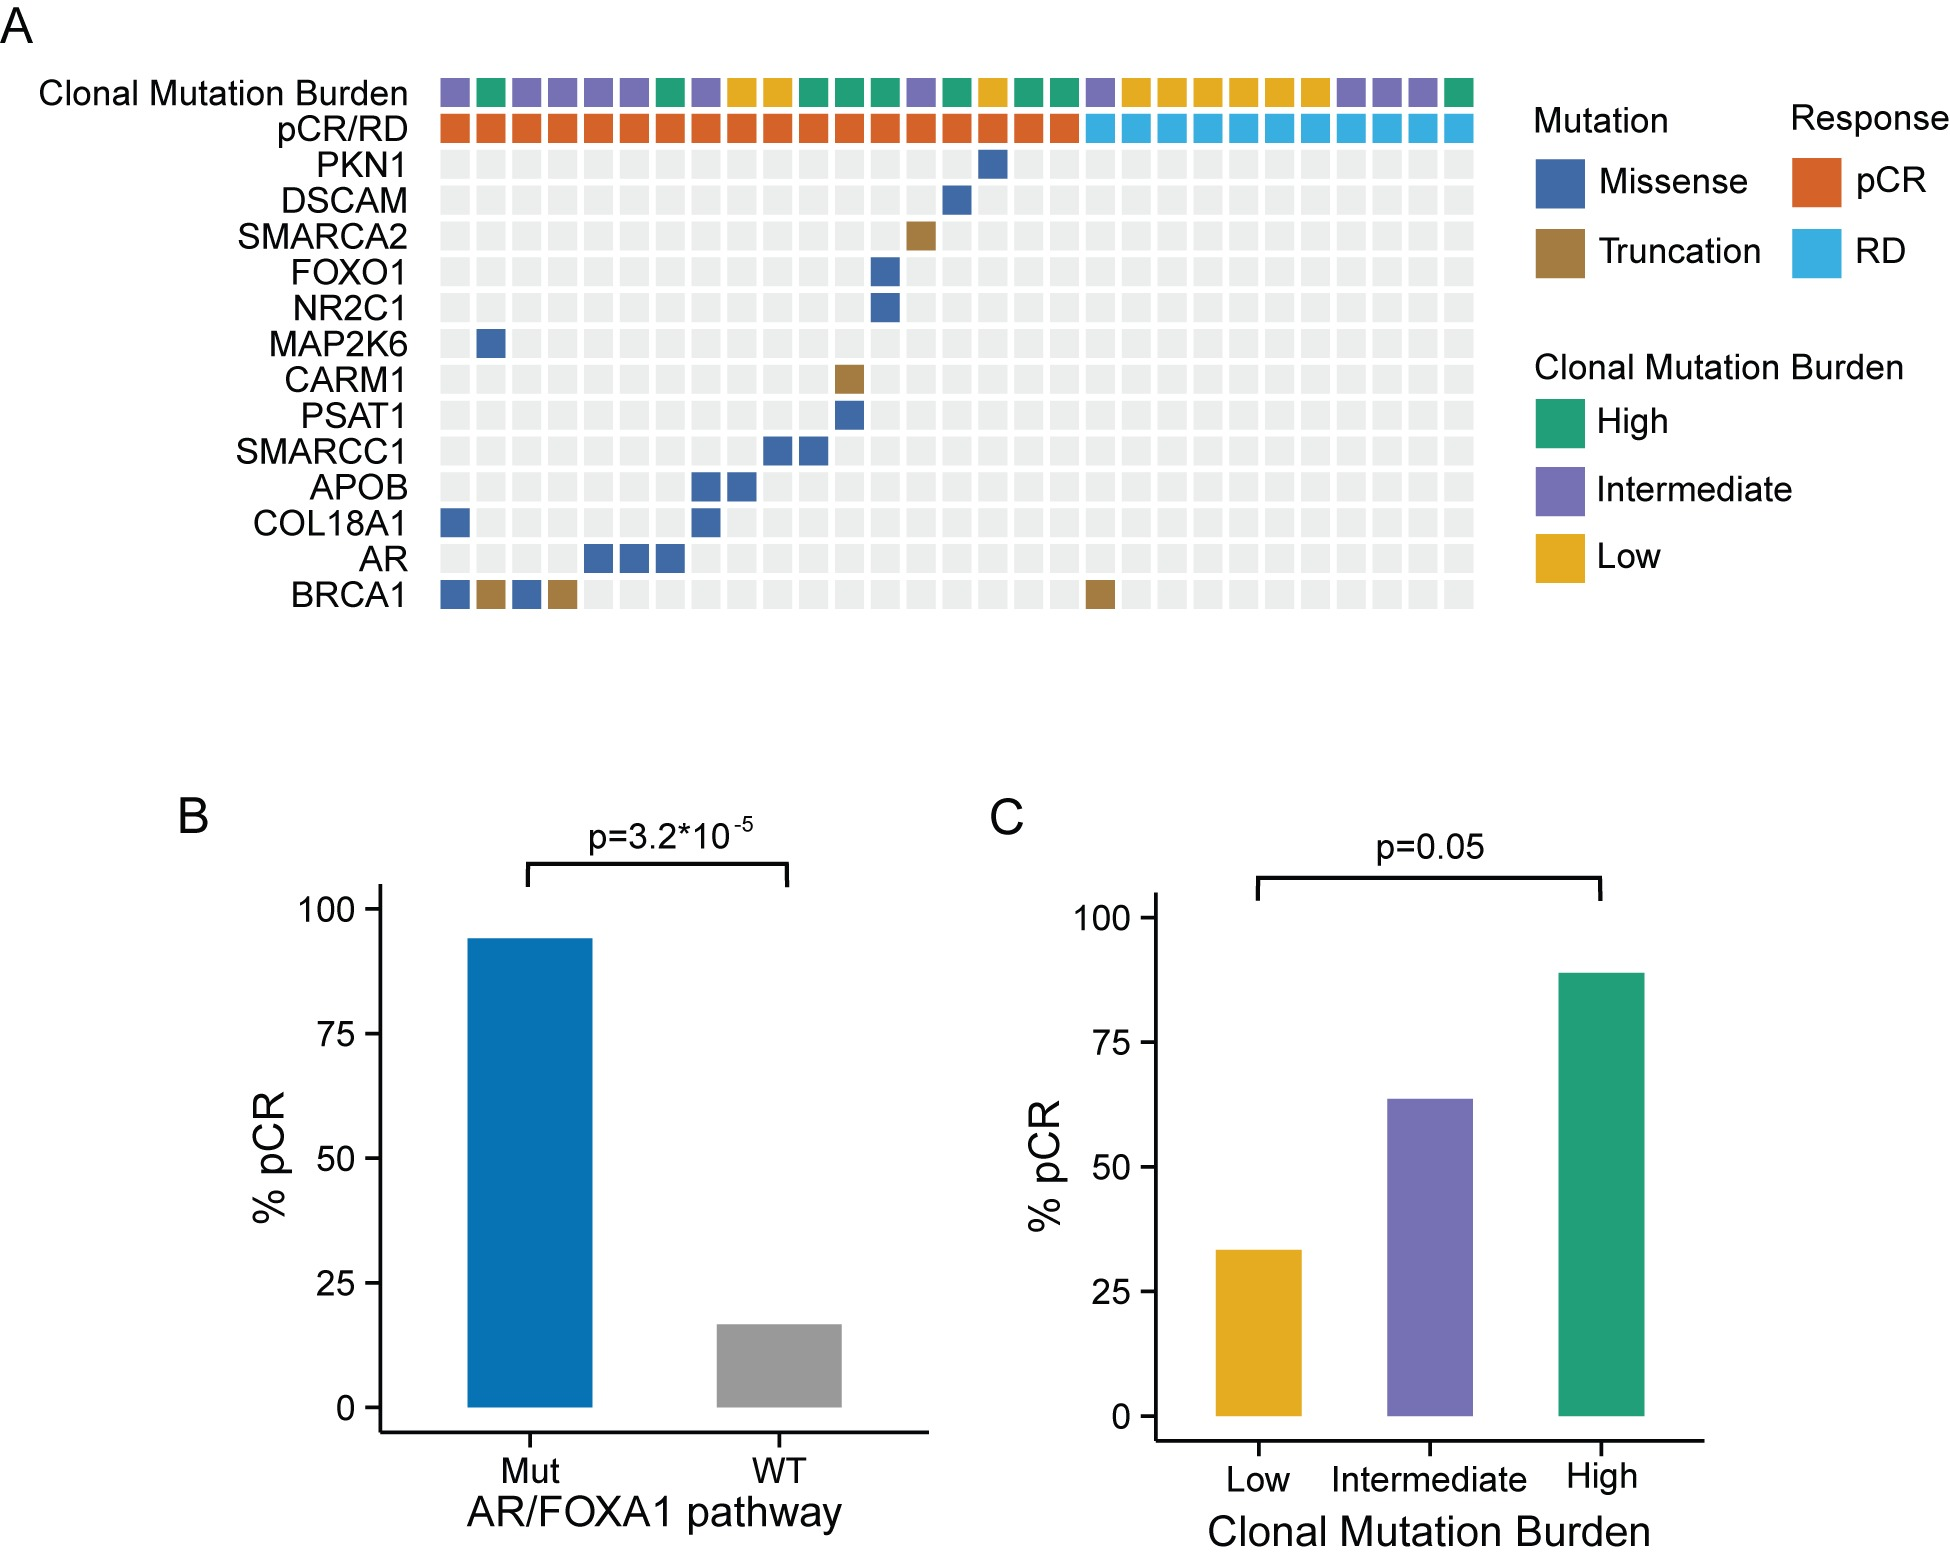 Genomic markers predictive of chemosensitivity in the MDACC triple negative breast cancer dataset.